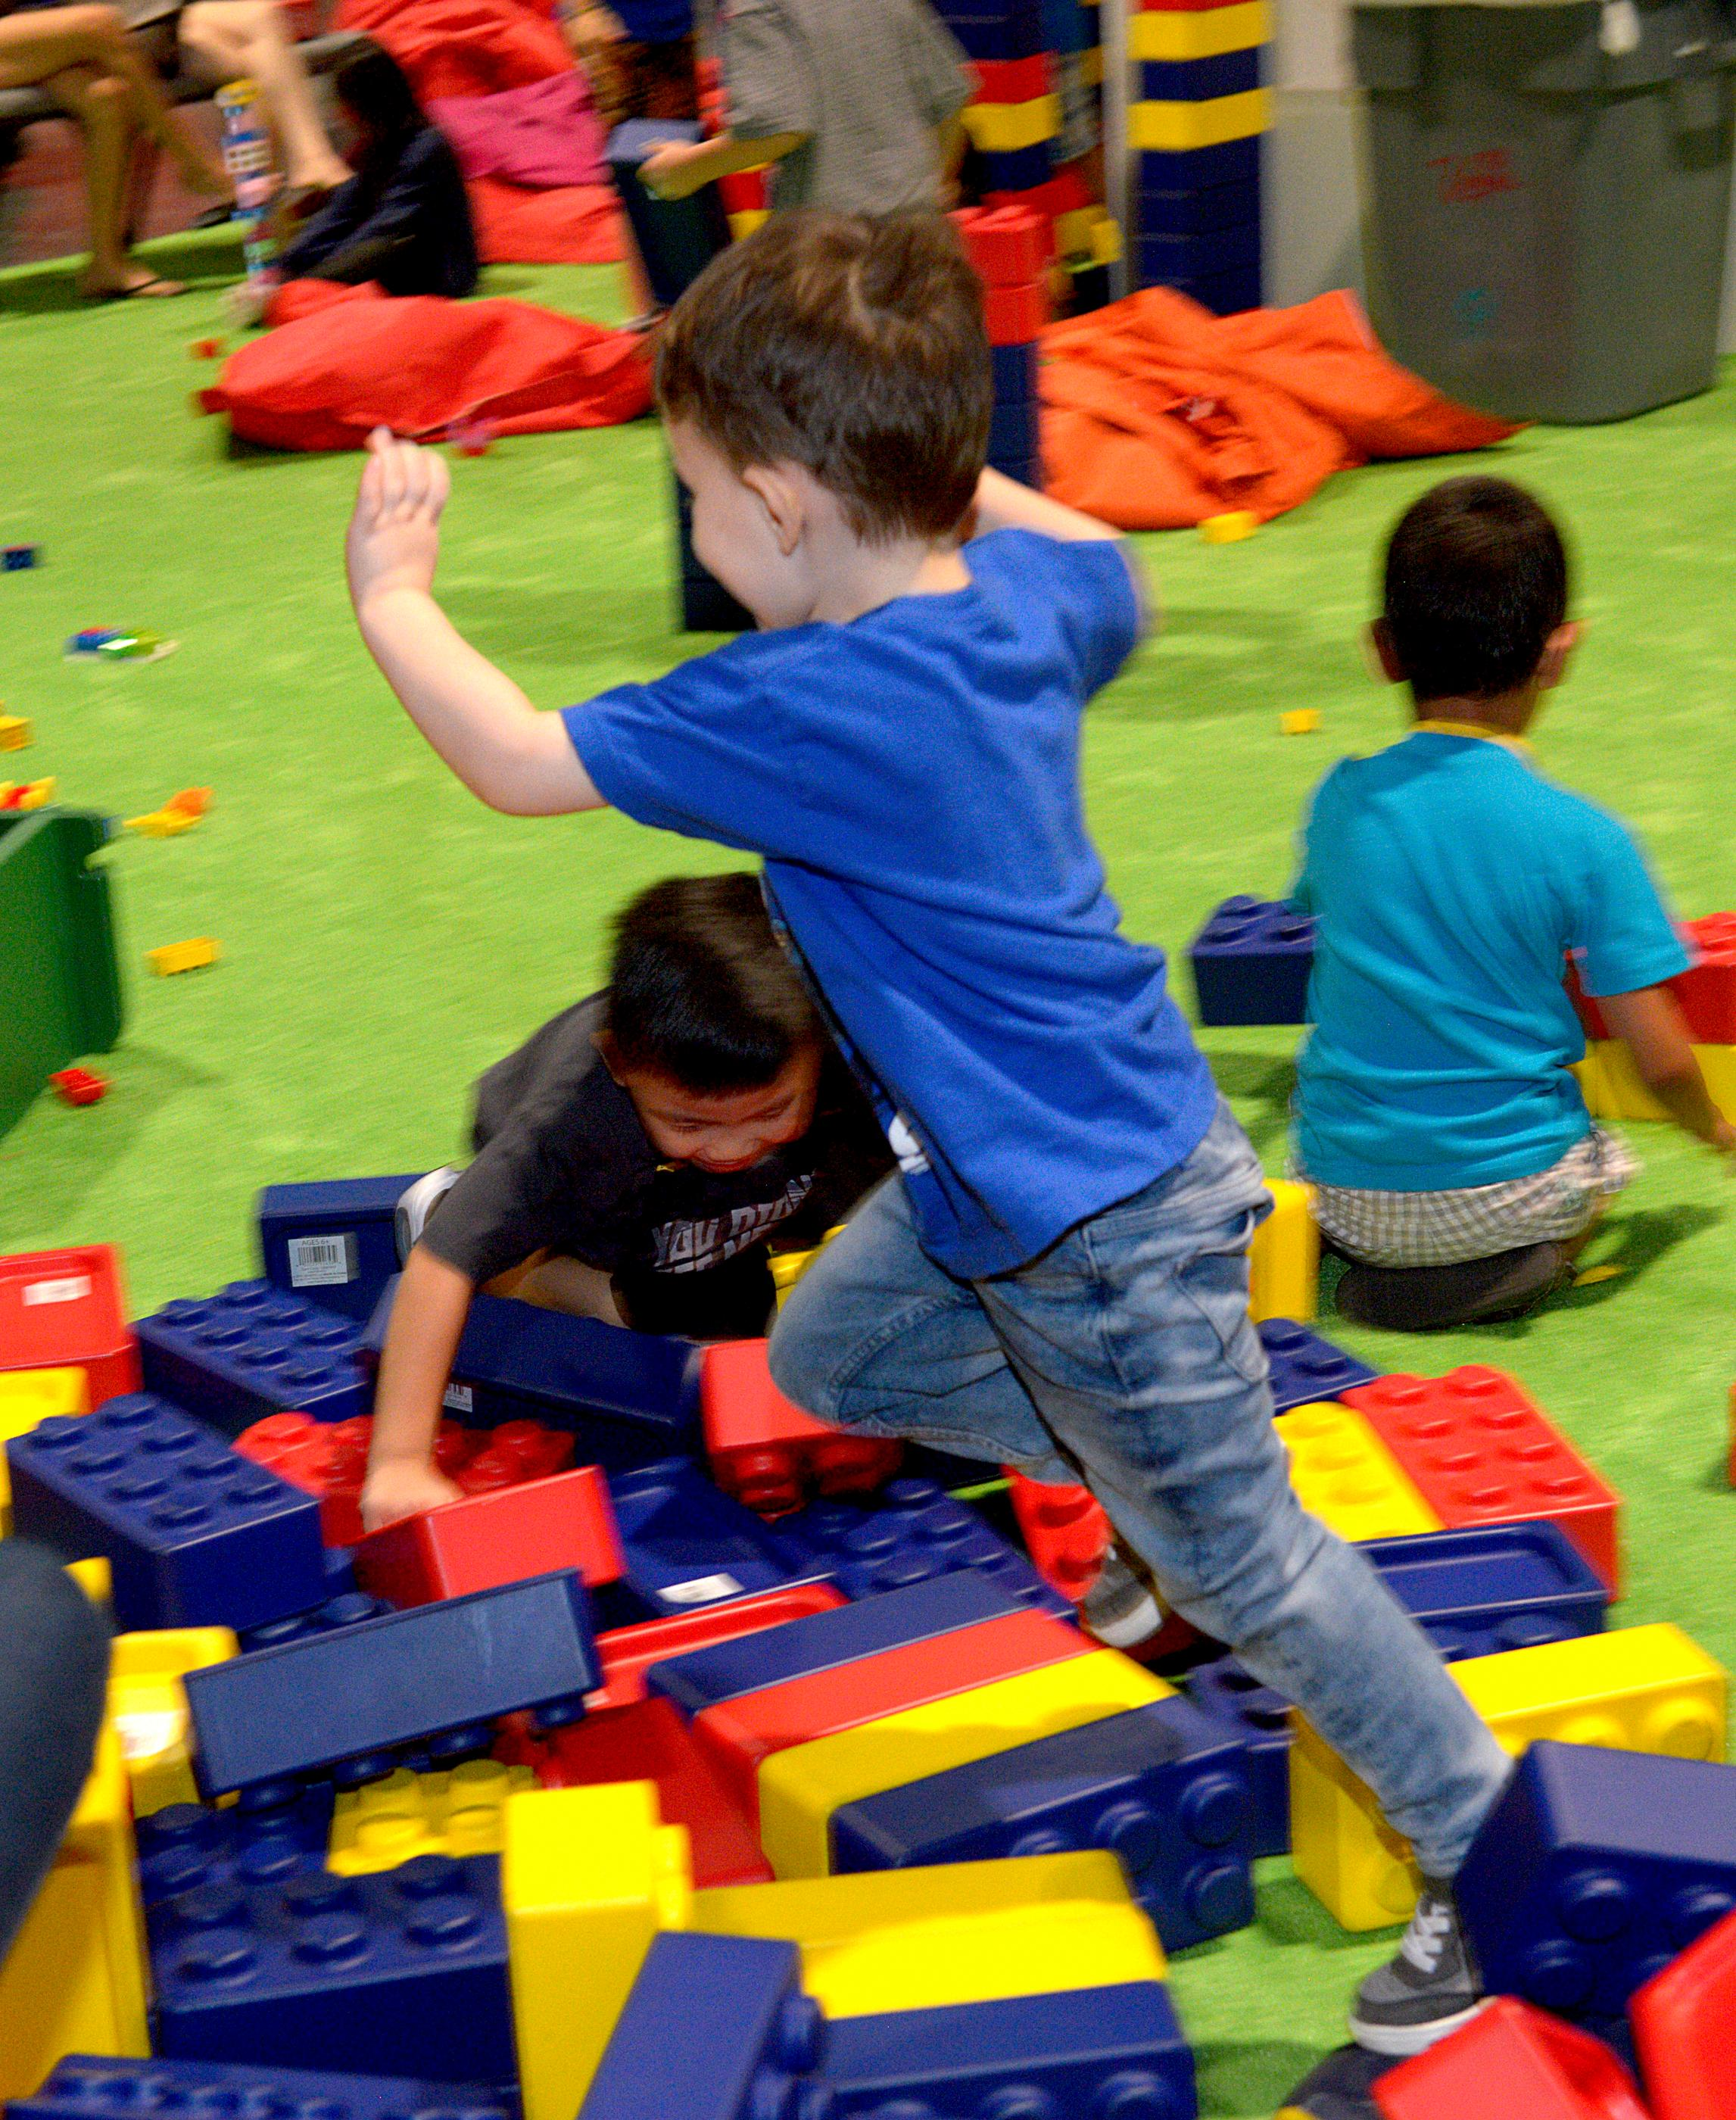 3 Year old Noah Olszeiwski leaps into a pile of rubber Legos during the Brick Fest Live Lego Fan Experience at the Las Vegas Convention Center, September 9, 2017. [Glenn Pinkerton/Las Vegas News Bureau]